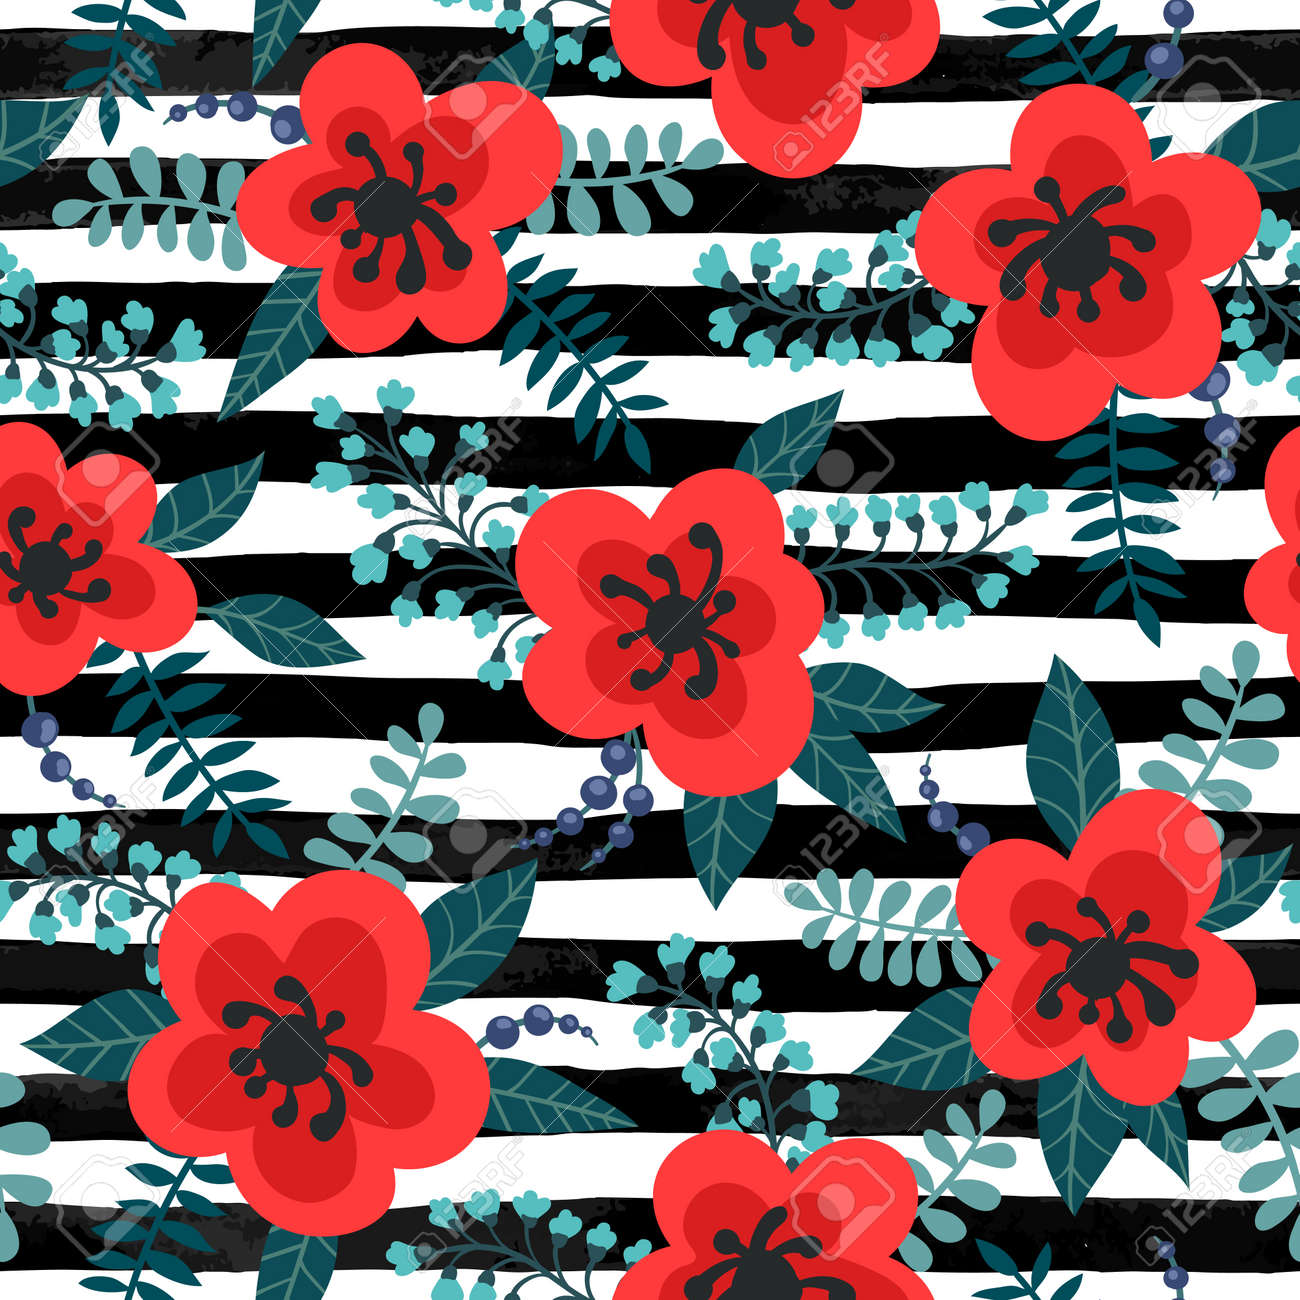 Floral Pattern With Red Flowers And Leaves On A Striped Black